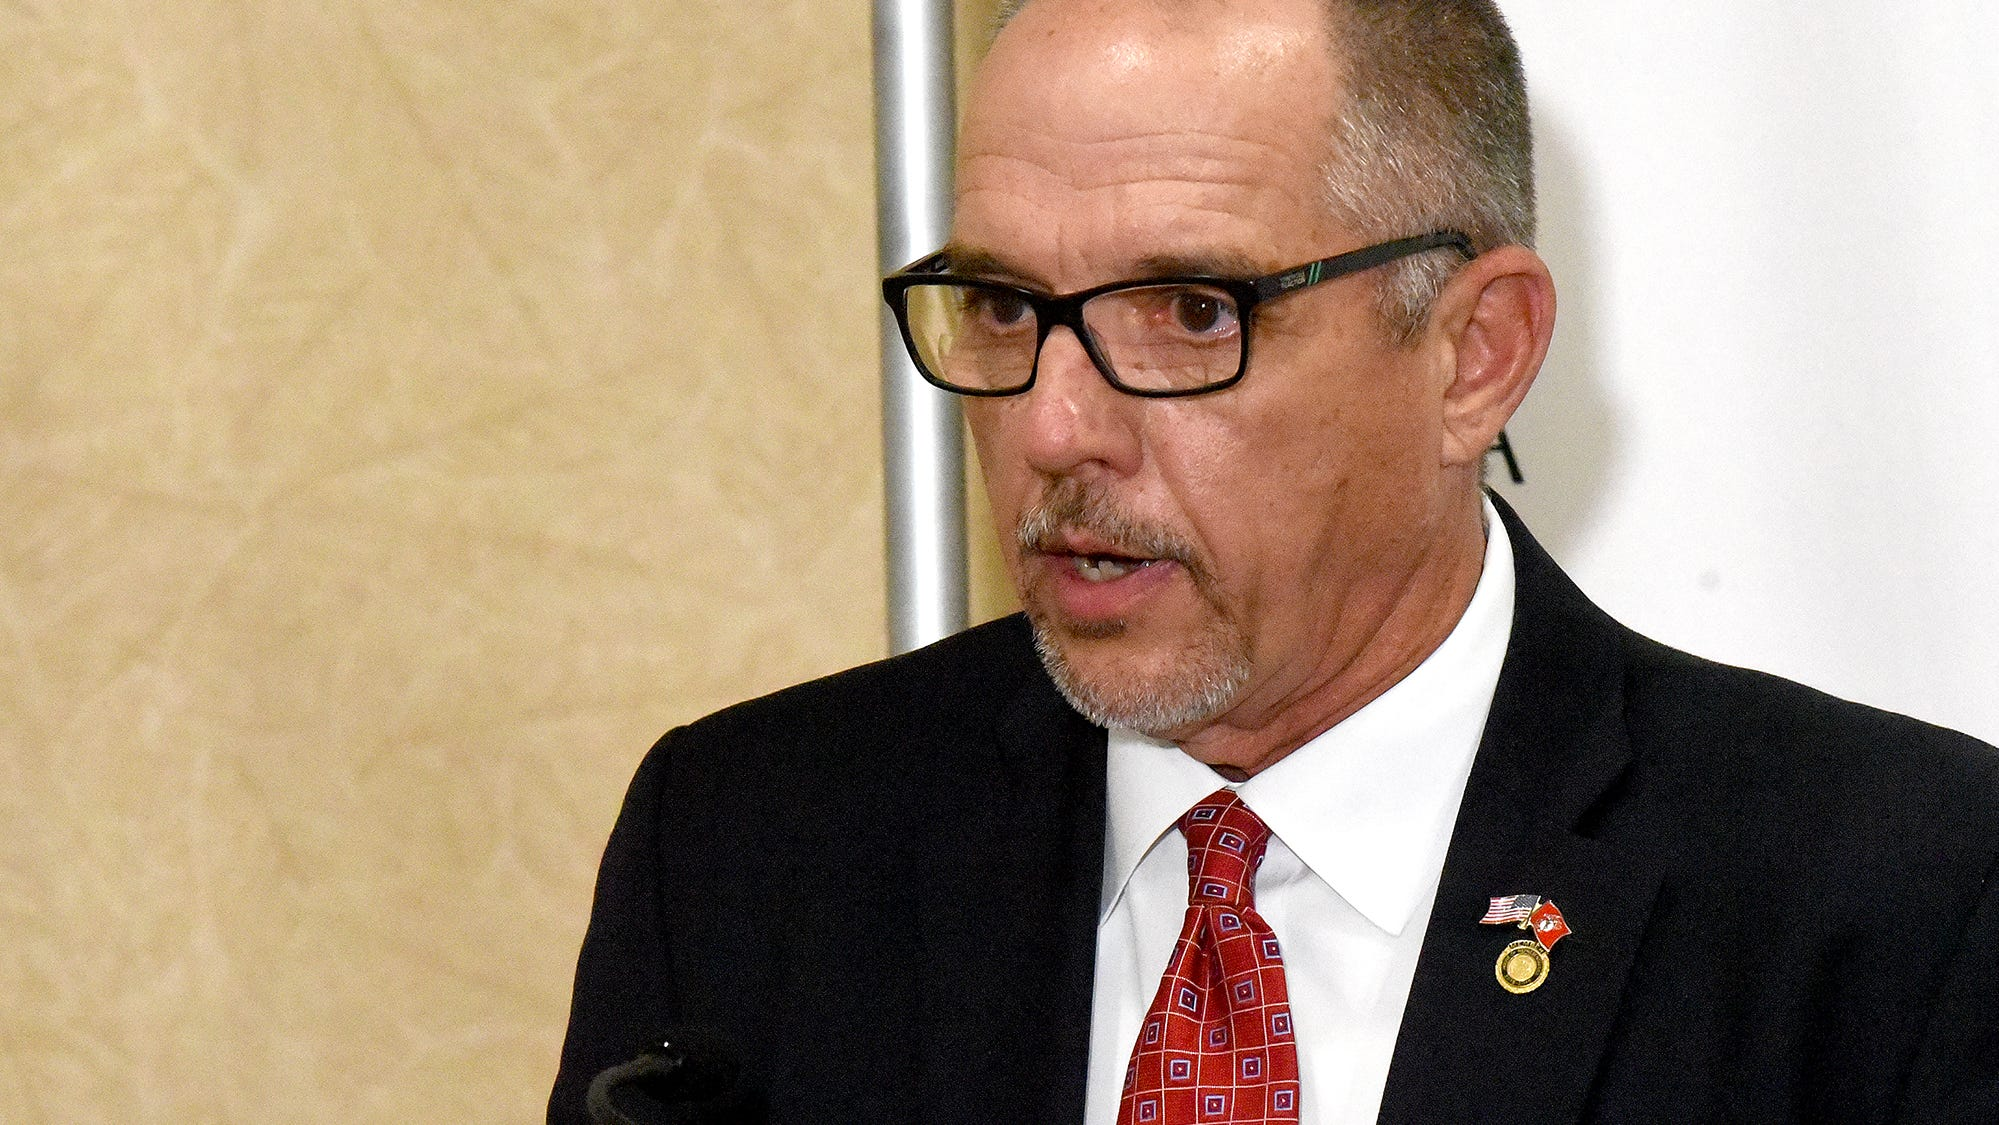 Rep. Chuck Basye calls for CPS Superintendent Brian Yearwood to resign